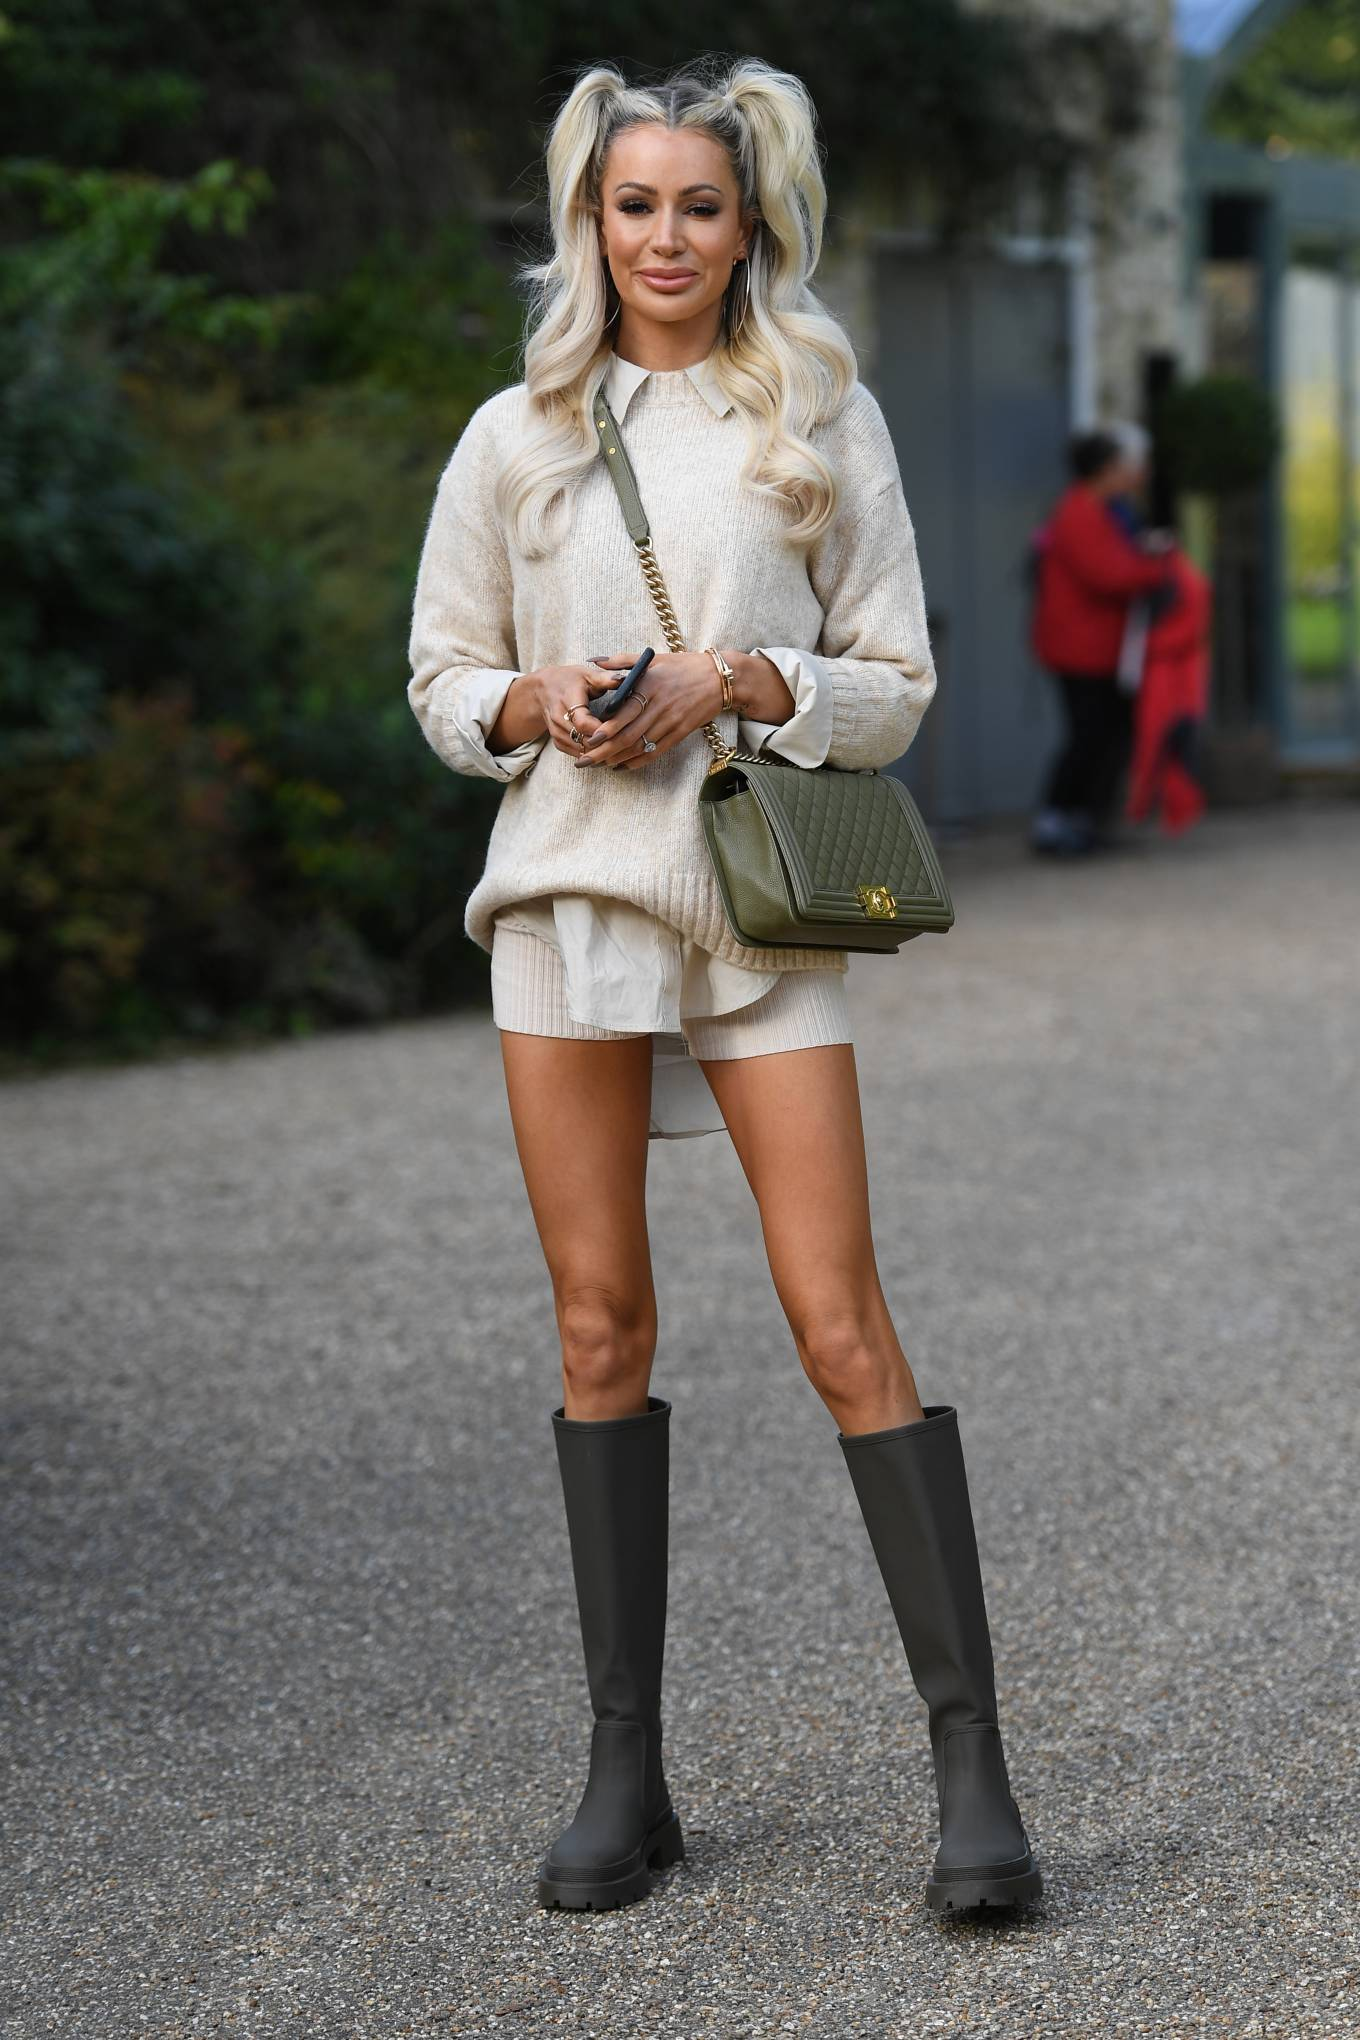 Olivia Attwood 2020 : Olivia Attwood – The Only Way is Essex TV Show filming in Essex-04